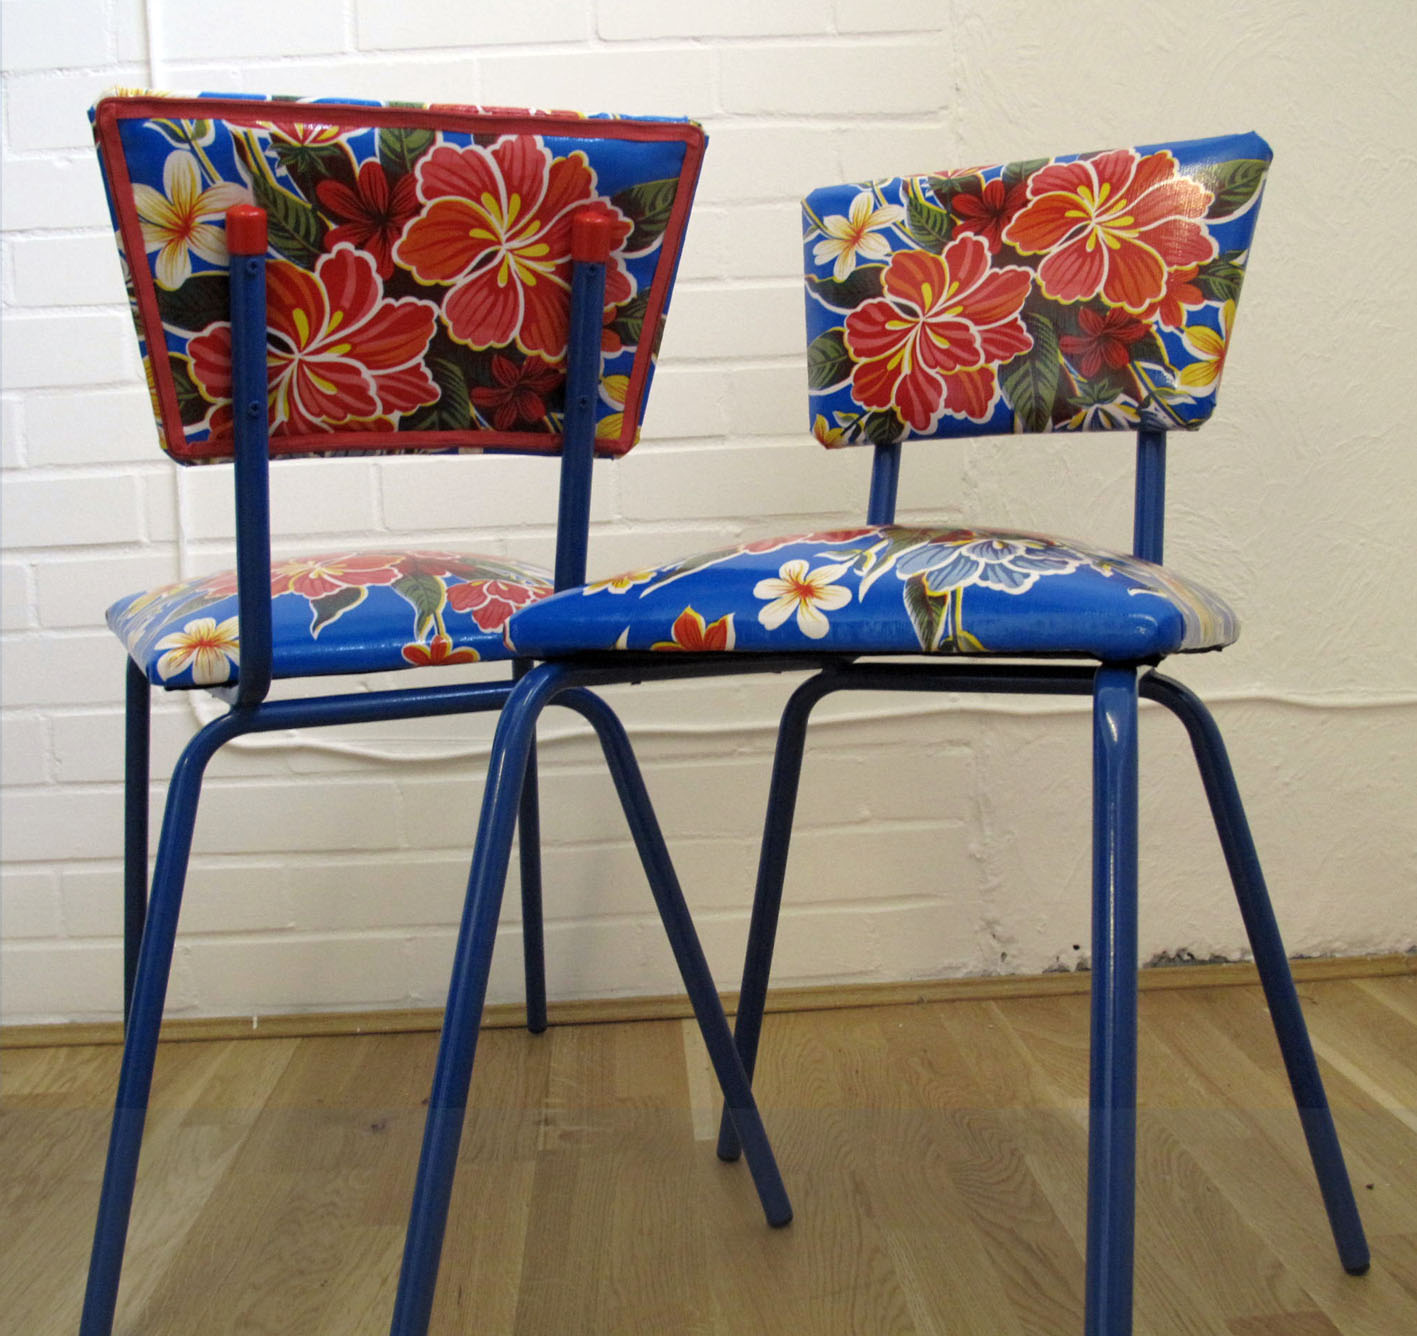 Retro kitchen chairs